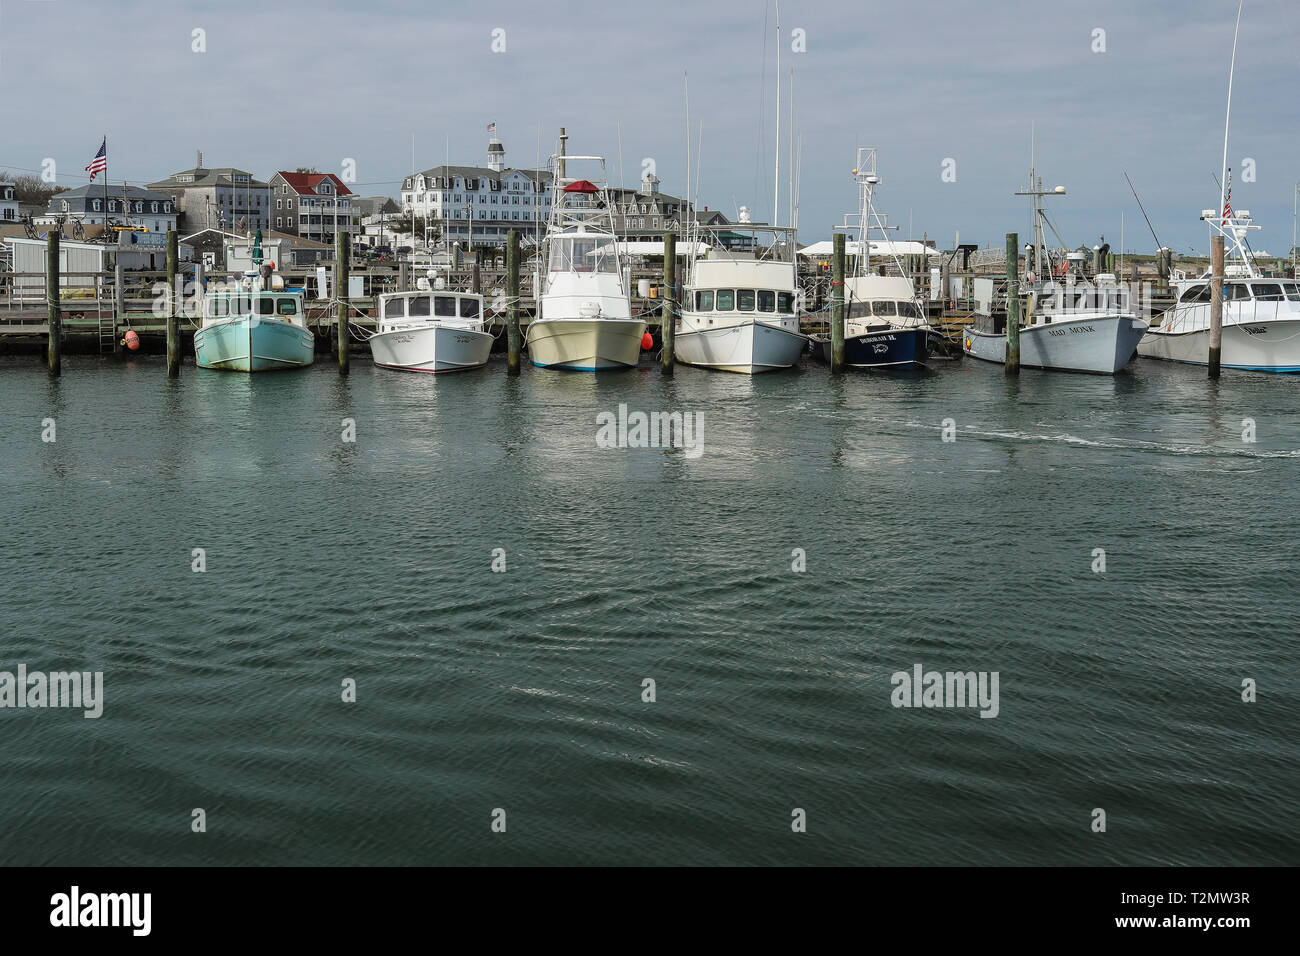 Boats at mooring, hotels in background. Block Island Rhode Island, USA. fishing and pleasure boats dot the shoreline at Old Harbor, Block Island, RI - Stock Image